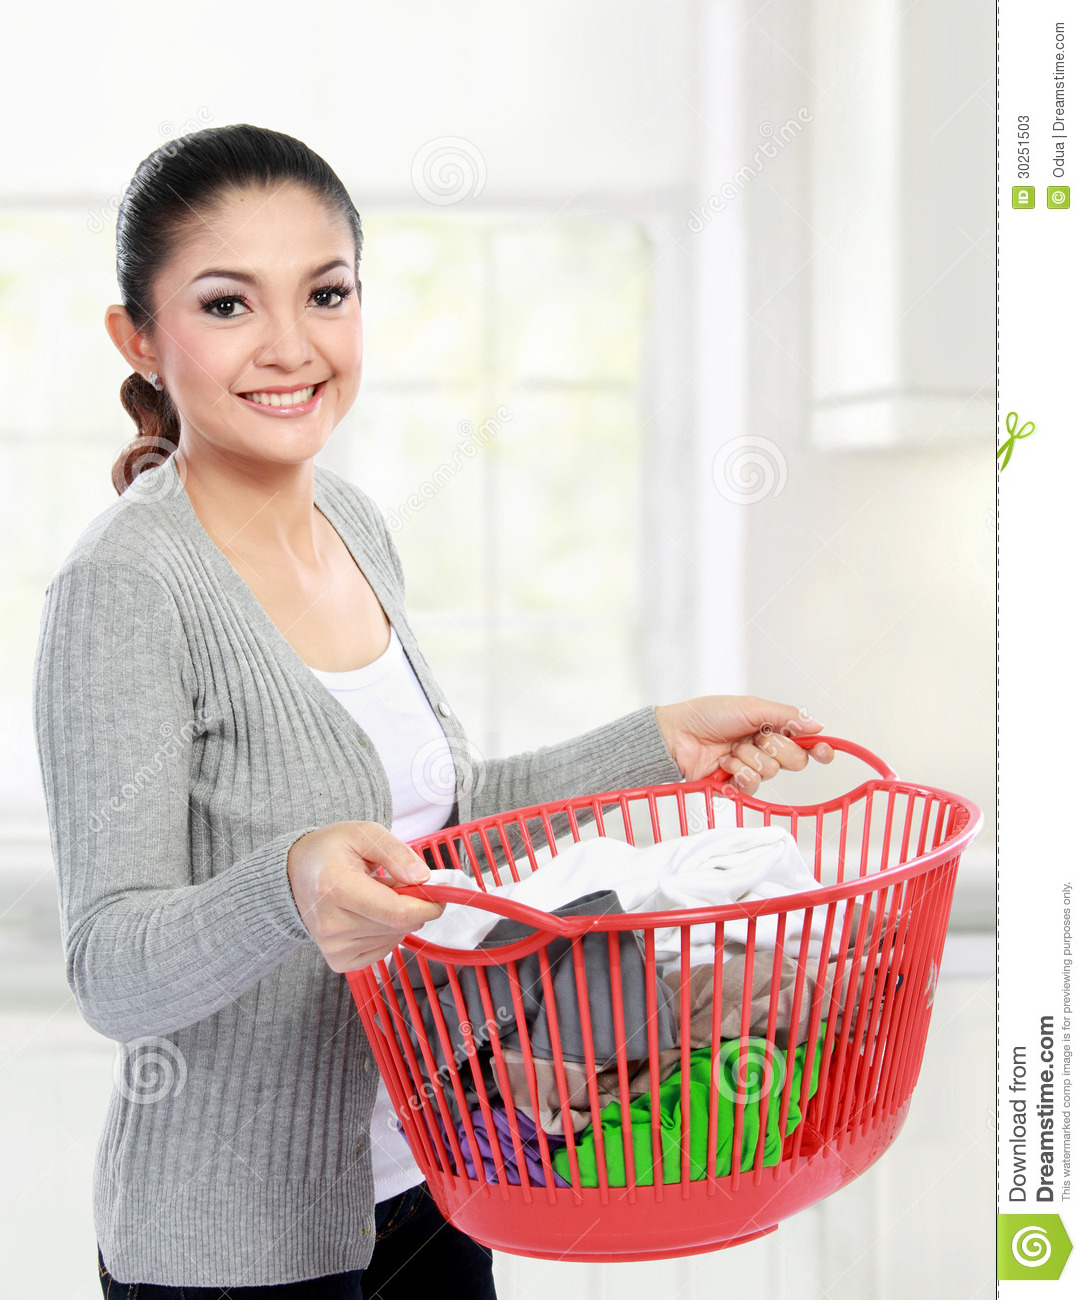 Woman With A Basket Of Loundry Stock Photos Image 30251503